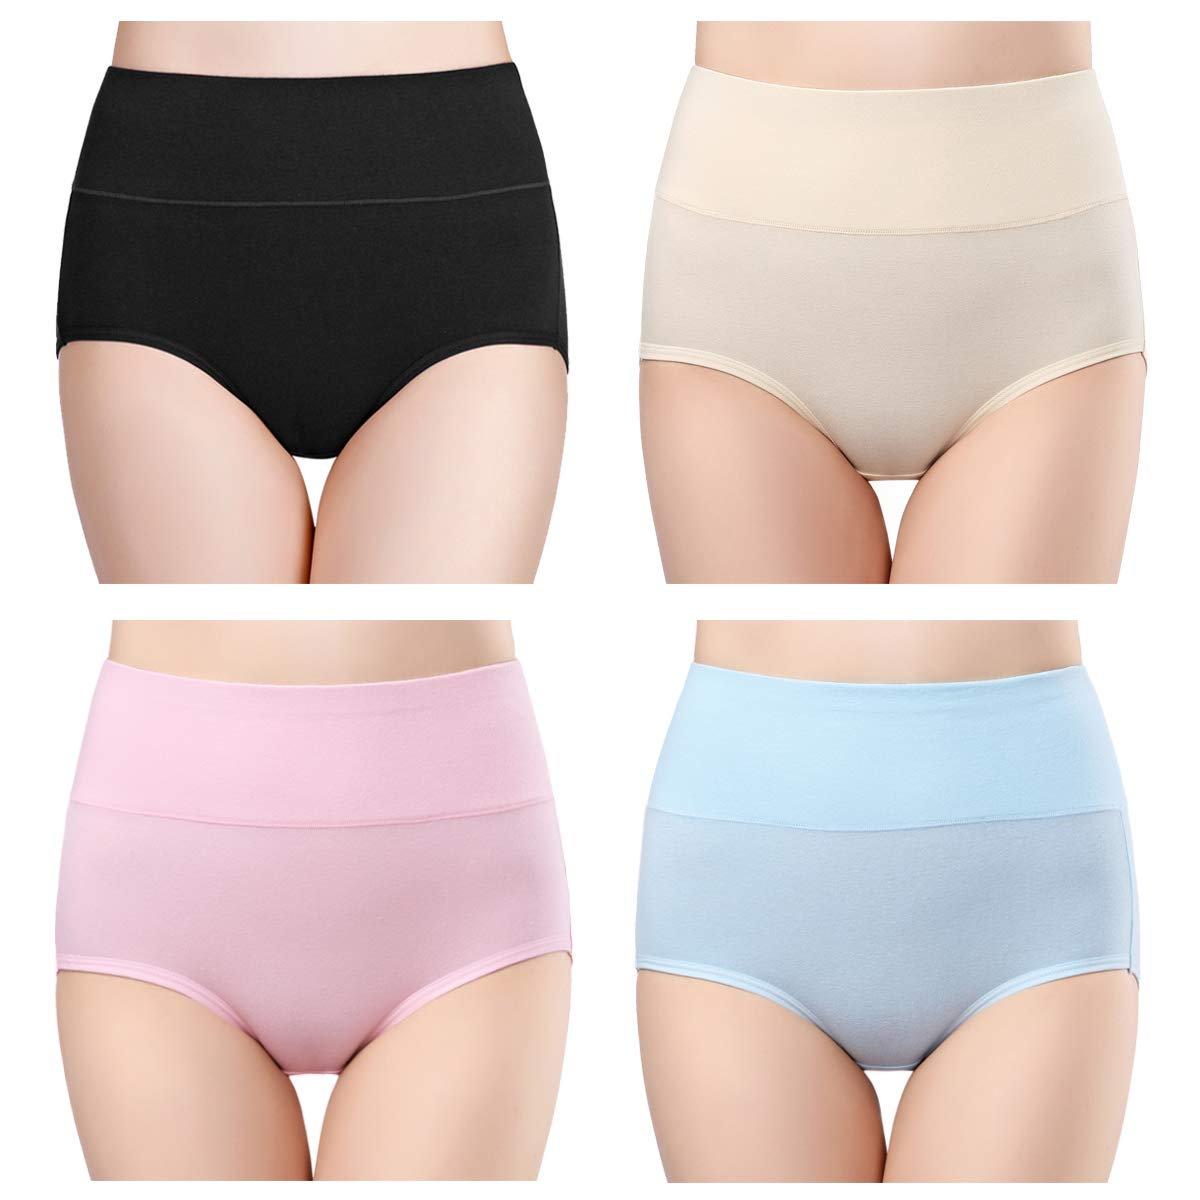 c7582a83ab0c wirarpa Women's Cotton Underwear High Waist Full Coverage Brief Panty  Multipack   Beauty For You Store - Beauty products Shopping